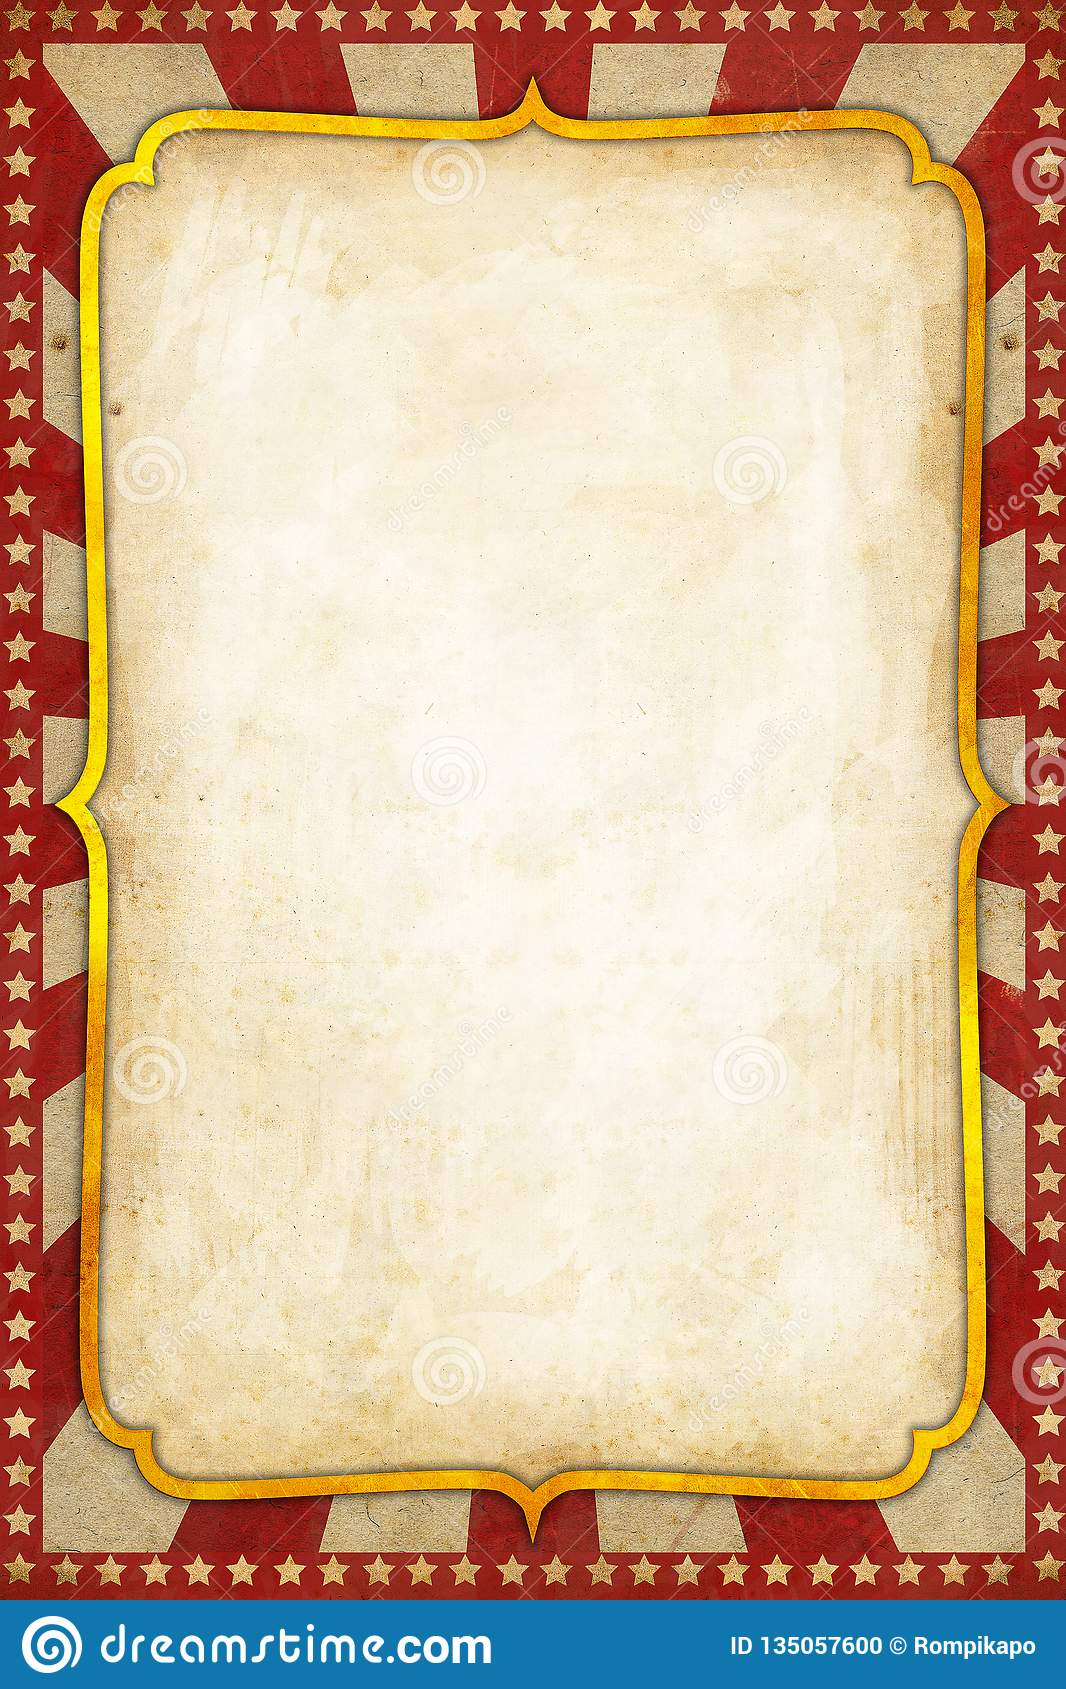 Vintage Circus Poster Background with golden frame red sunburst and stars